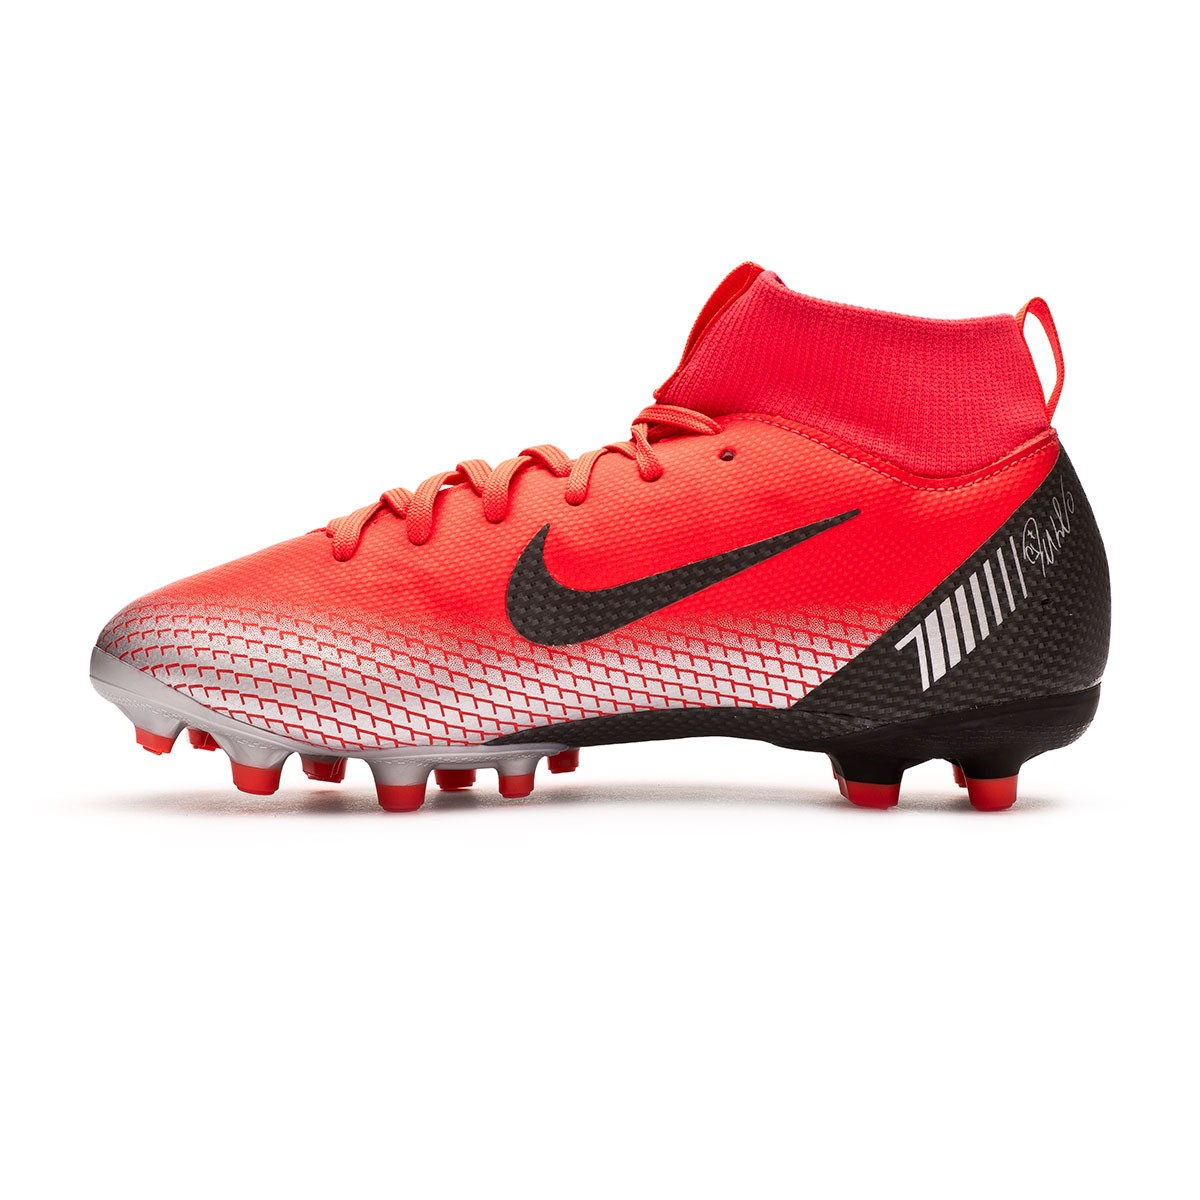 4a0f641d376 Zapatos de fútbol Nike Mercurial Superfly VI Academy CR7 MG Niño Bright  crimson-Black-Chrome-Dark grey - Tienda de fútbol Fútbol Emotion